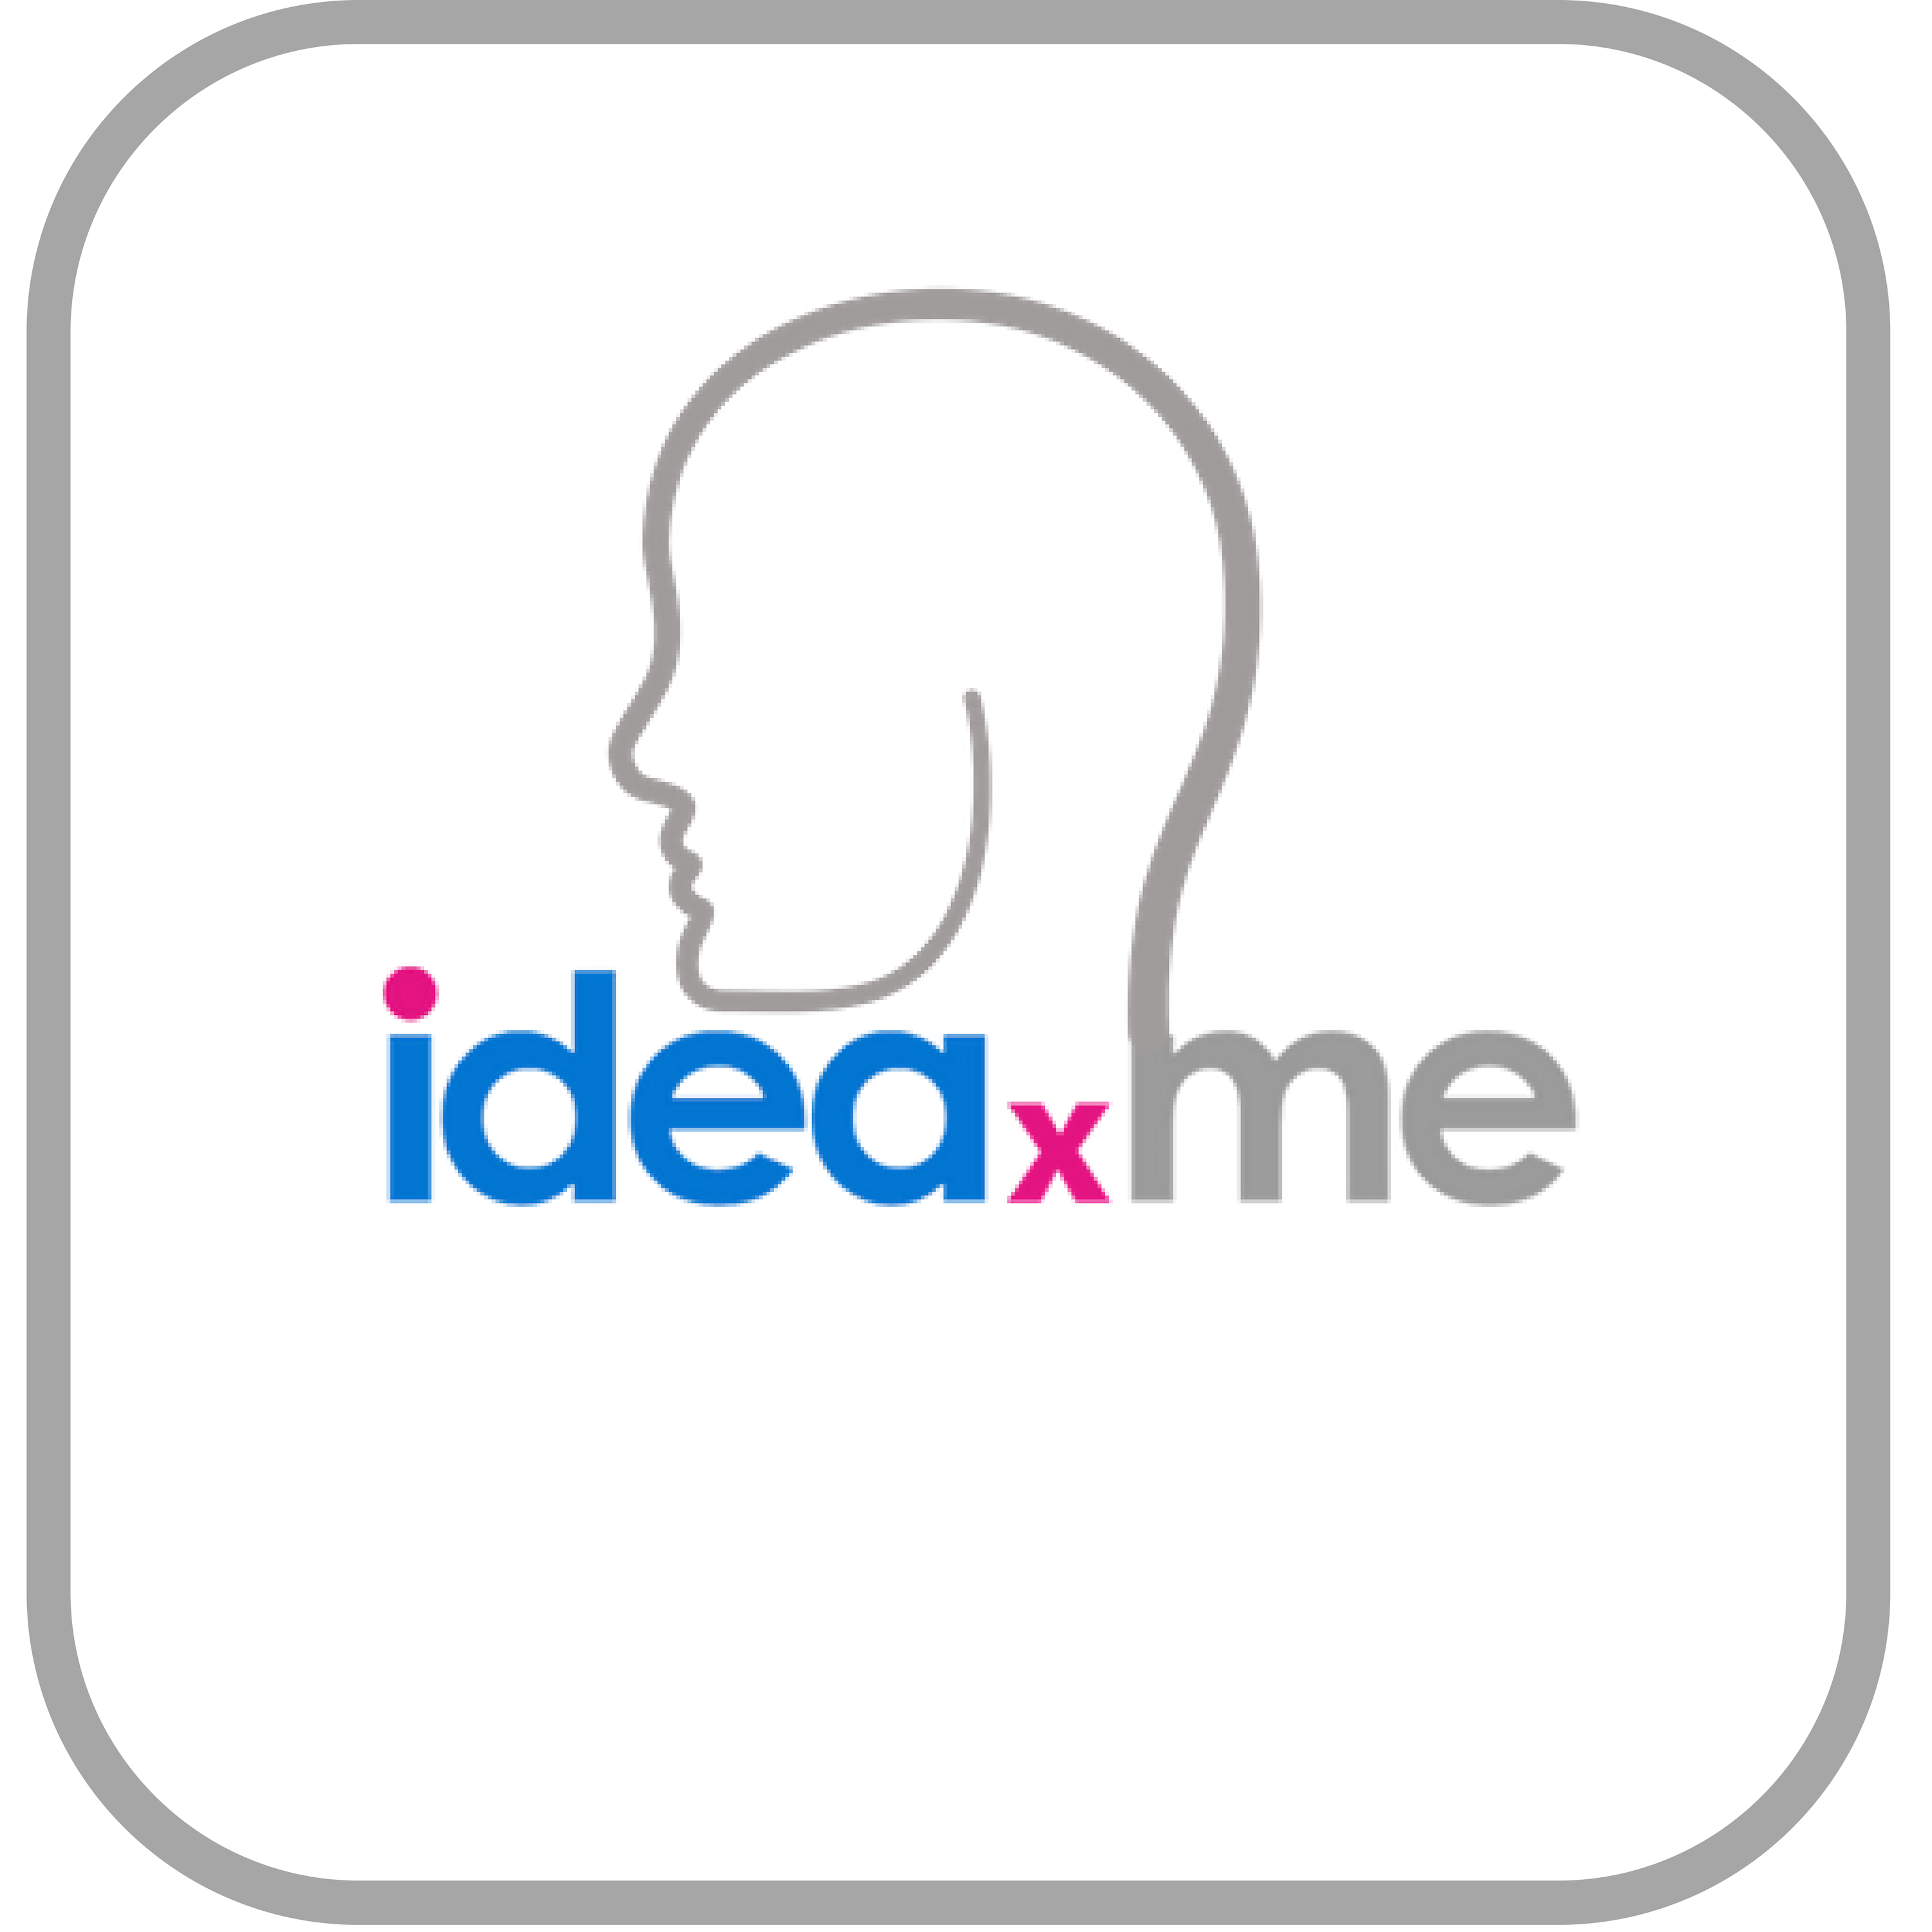 Home - ideaXme